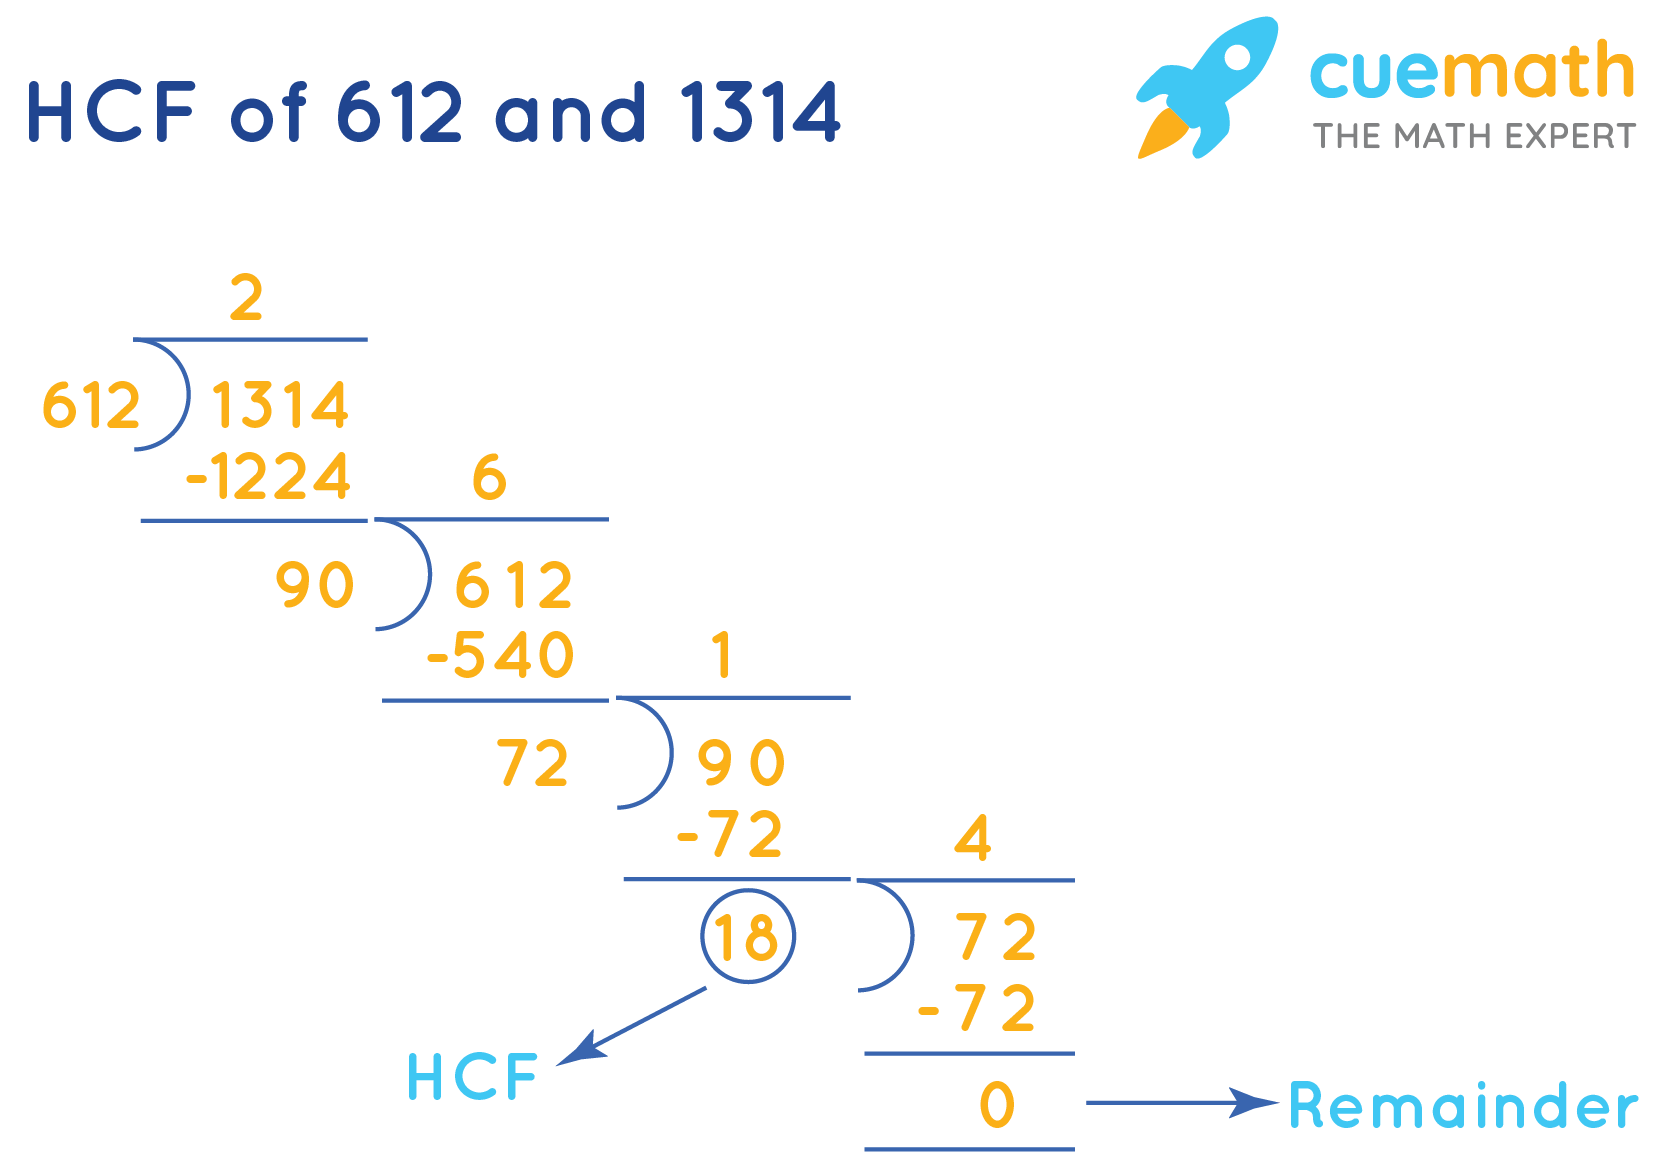 HCF of 612 and 1314